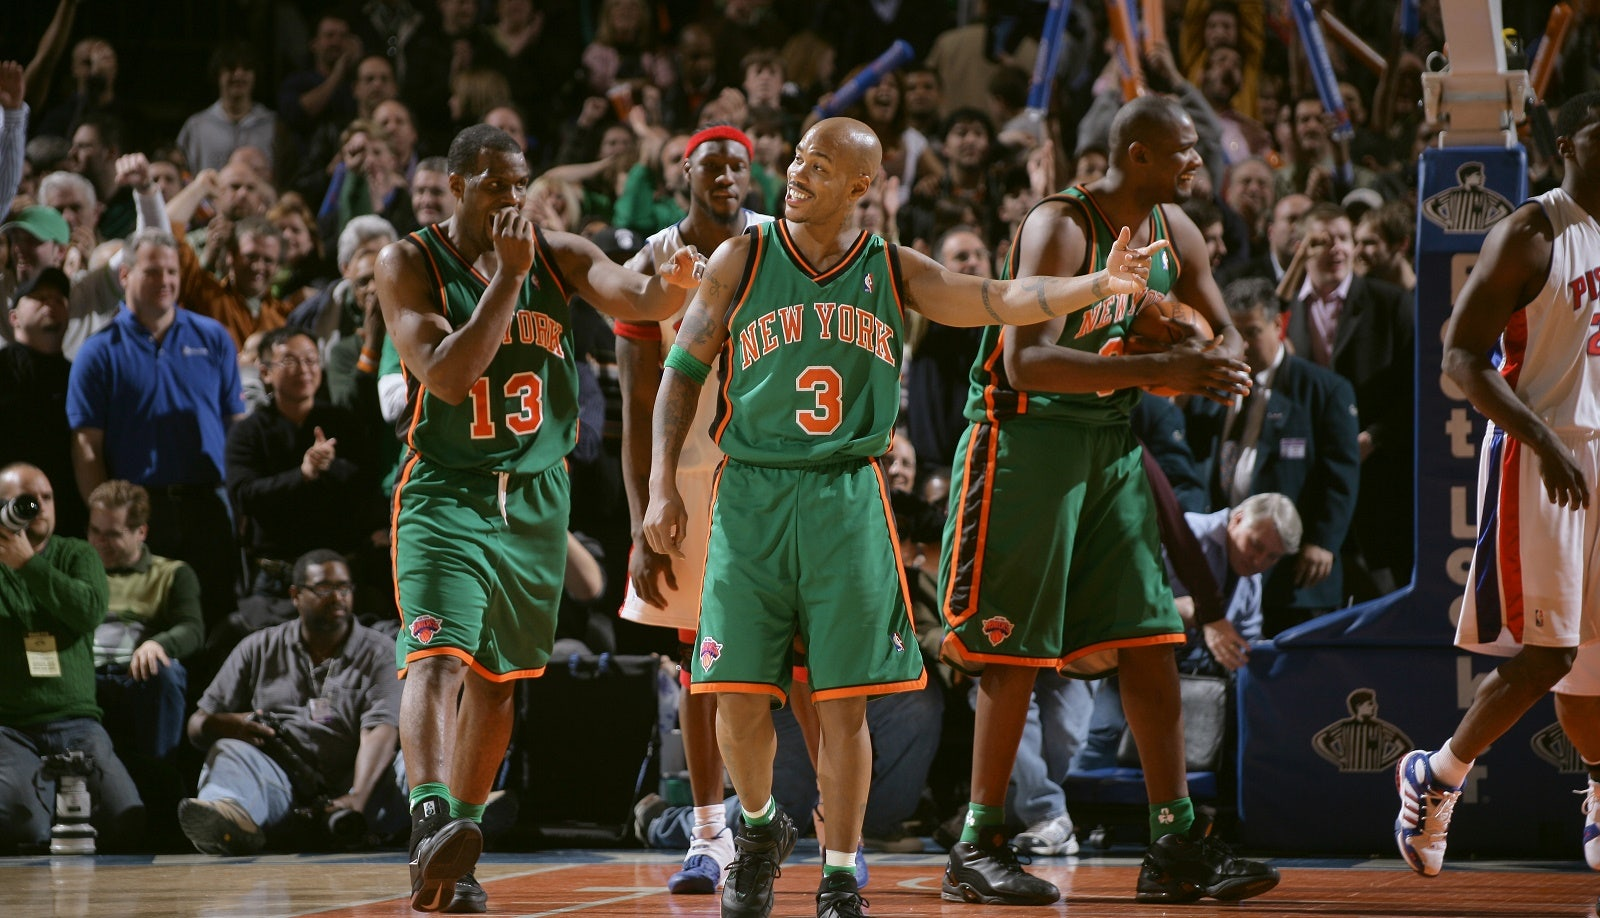 huge discount d8852 0d8a3 Every NBA team's worst jersey ever, ranked from acceptable ...